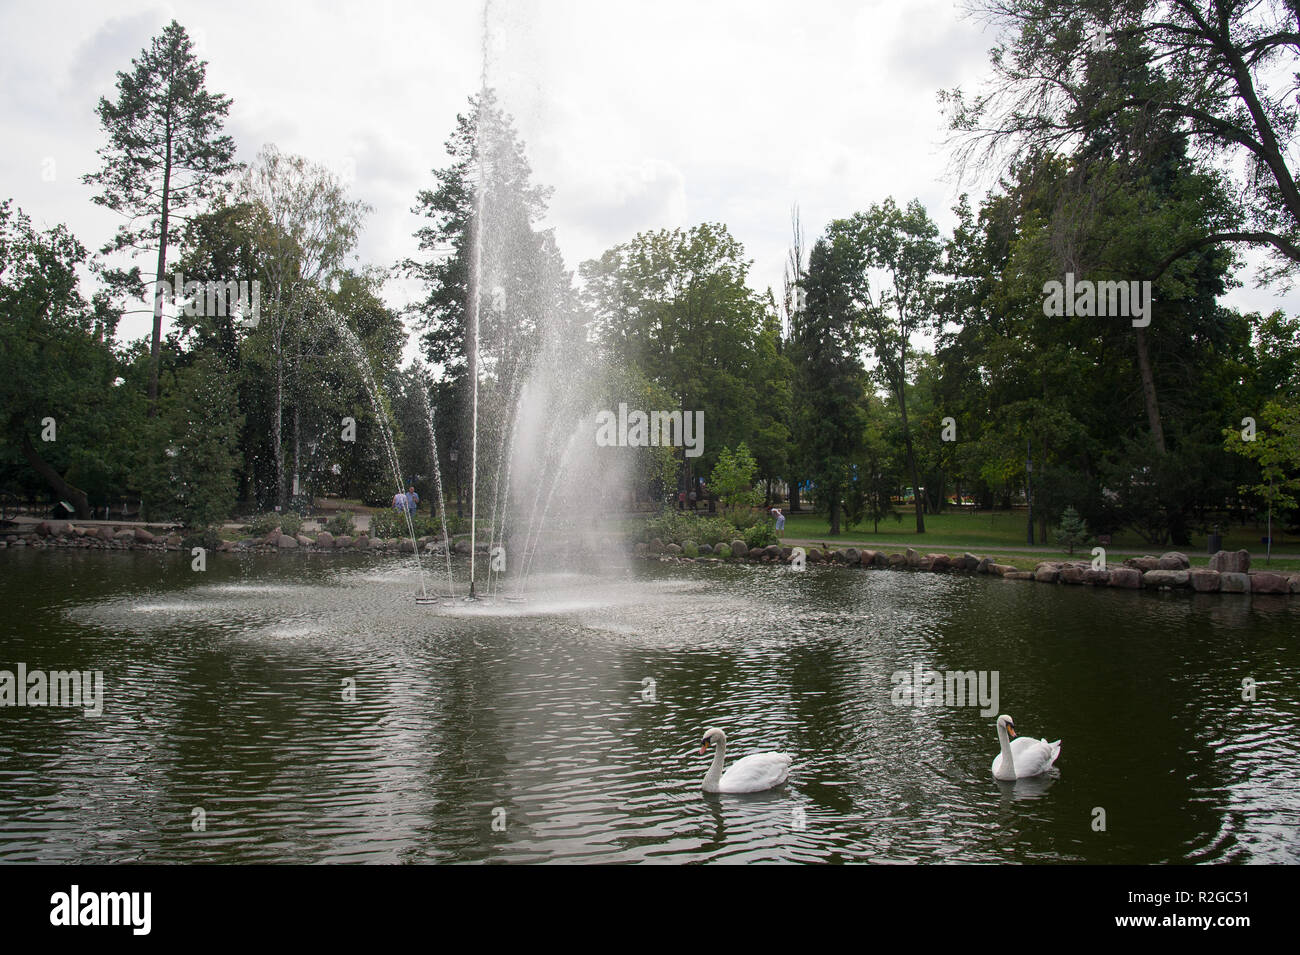 Fountain in public garden in Ciechocinek, Poland. September 3rd 2018 © Wojciech Strozyk / Alamy Stock Photo - Stock Image